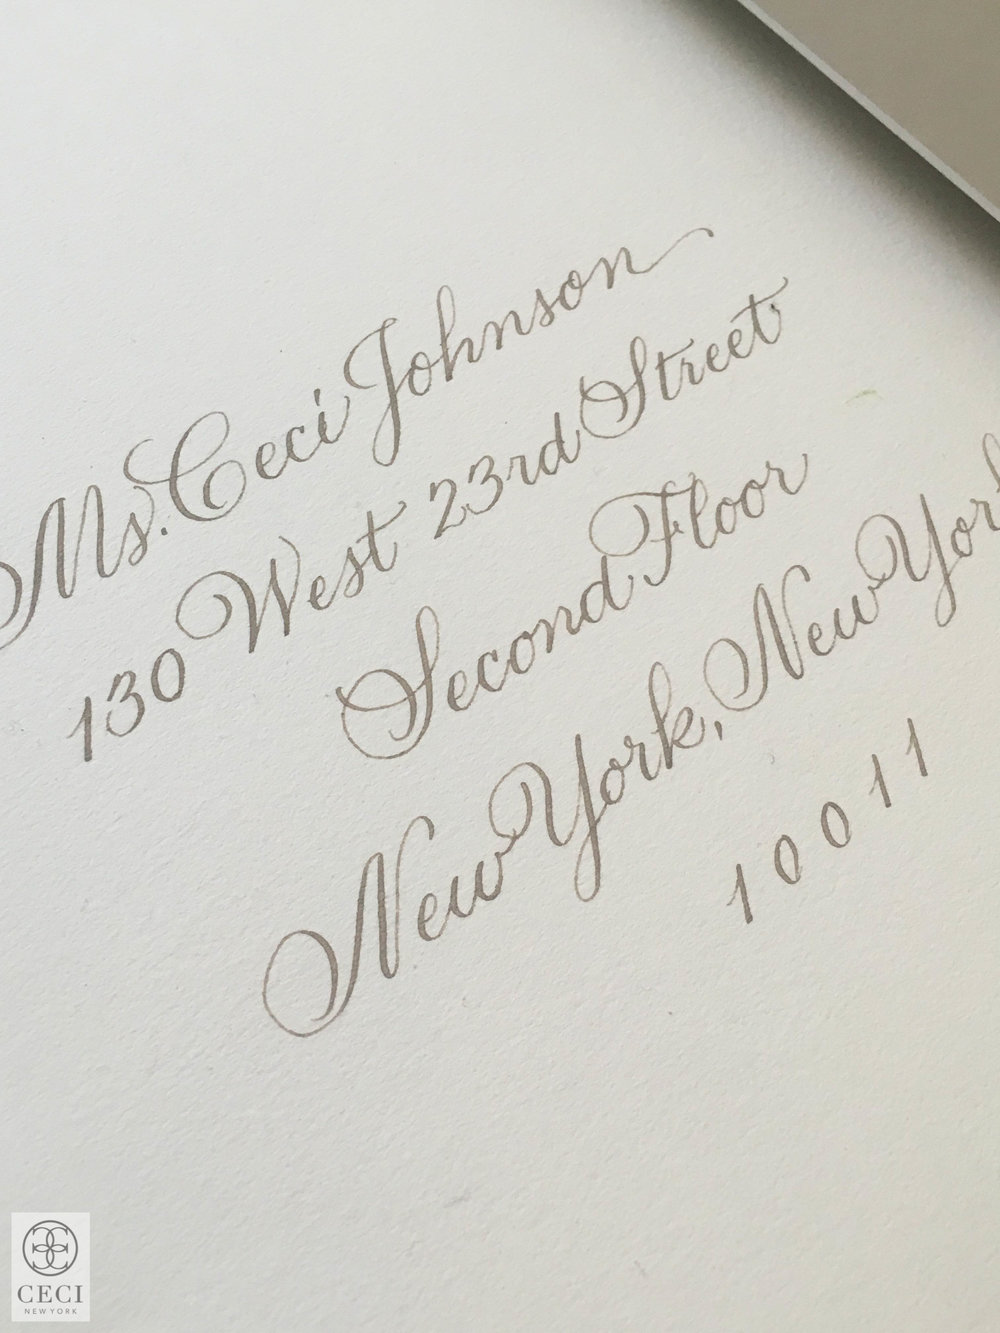 Ceci_New_York_Ceci_Style_Ceci_Johnson_Luxury_Lifestyle_Paradise_Island_Bahamas_Wedding_Engraved_Inspiration_Design_Custom_Couture_Personalized_Invitations_--8.jpg